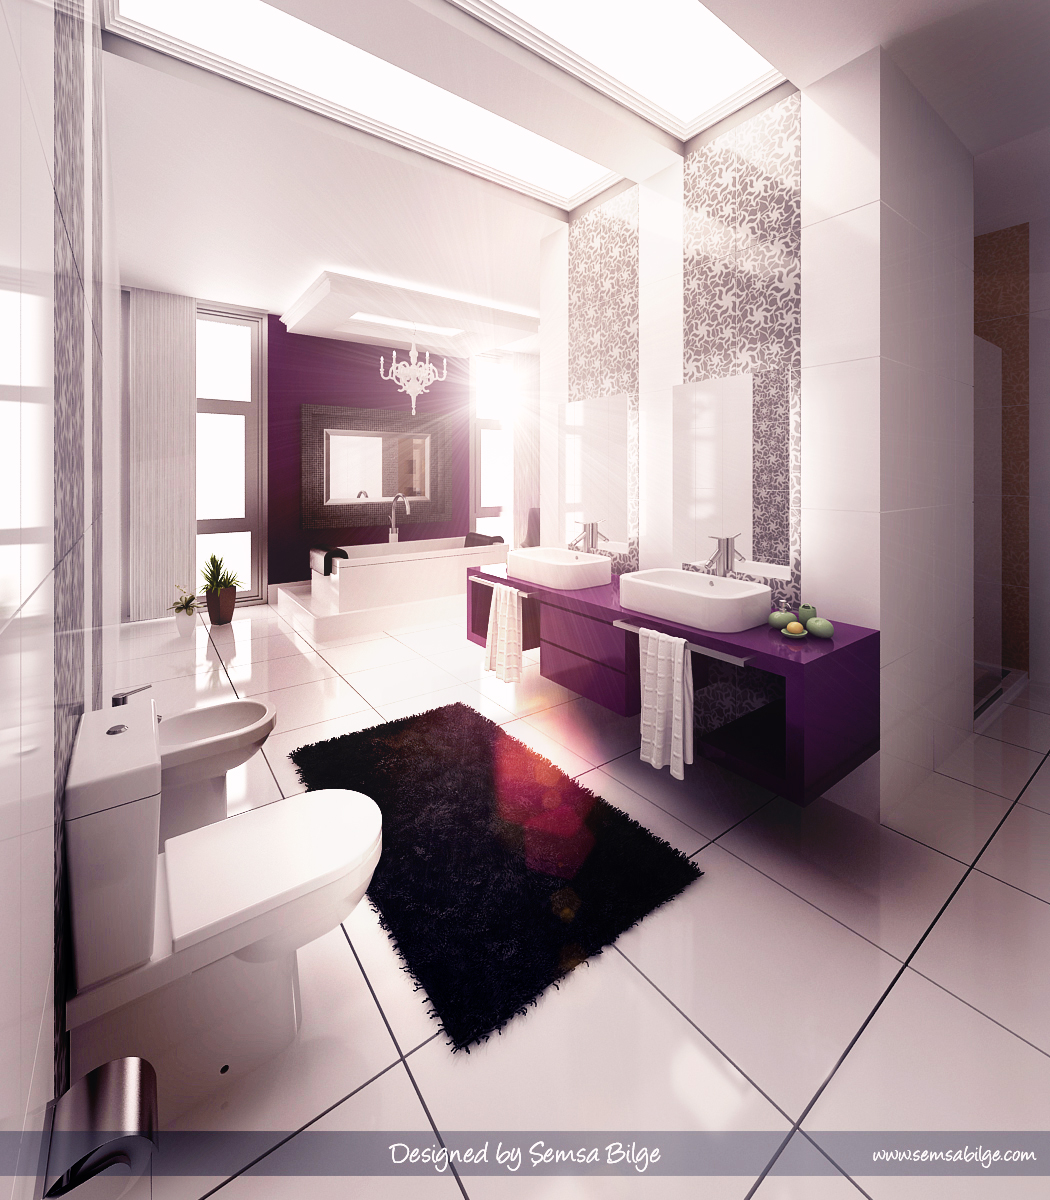 Inspiring bathroom designs for the soul for New bathroom design